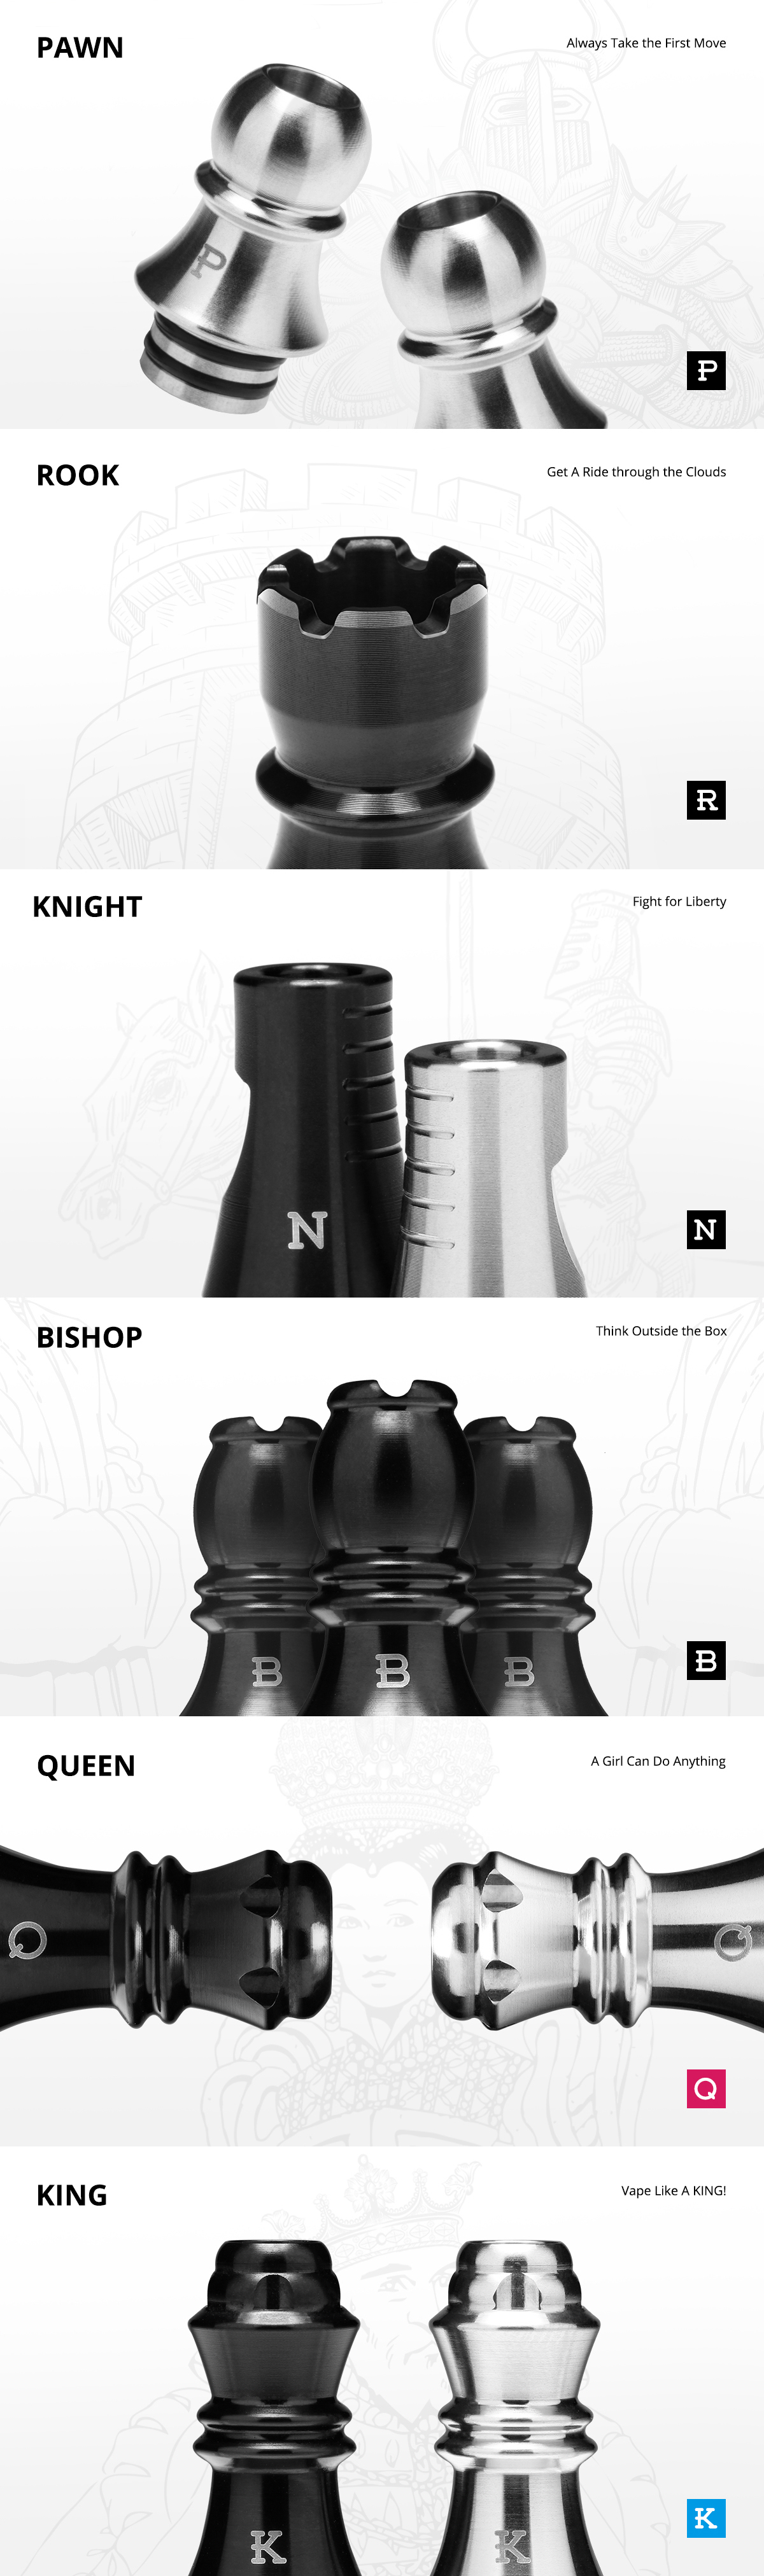 KIZOKU Chess Series Drip Tip 6pcs